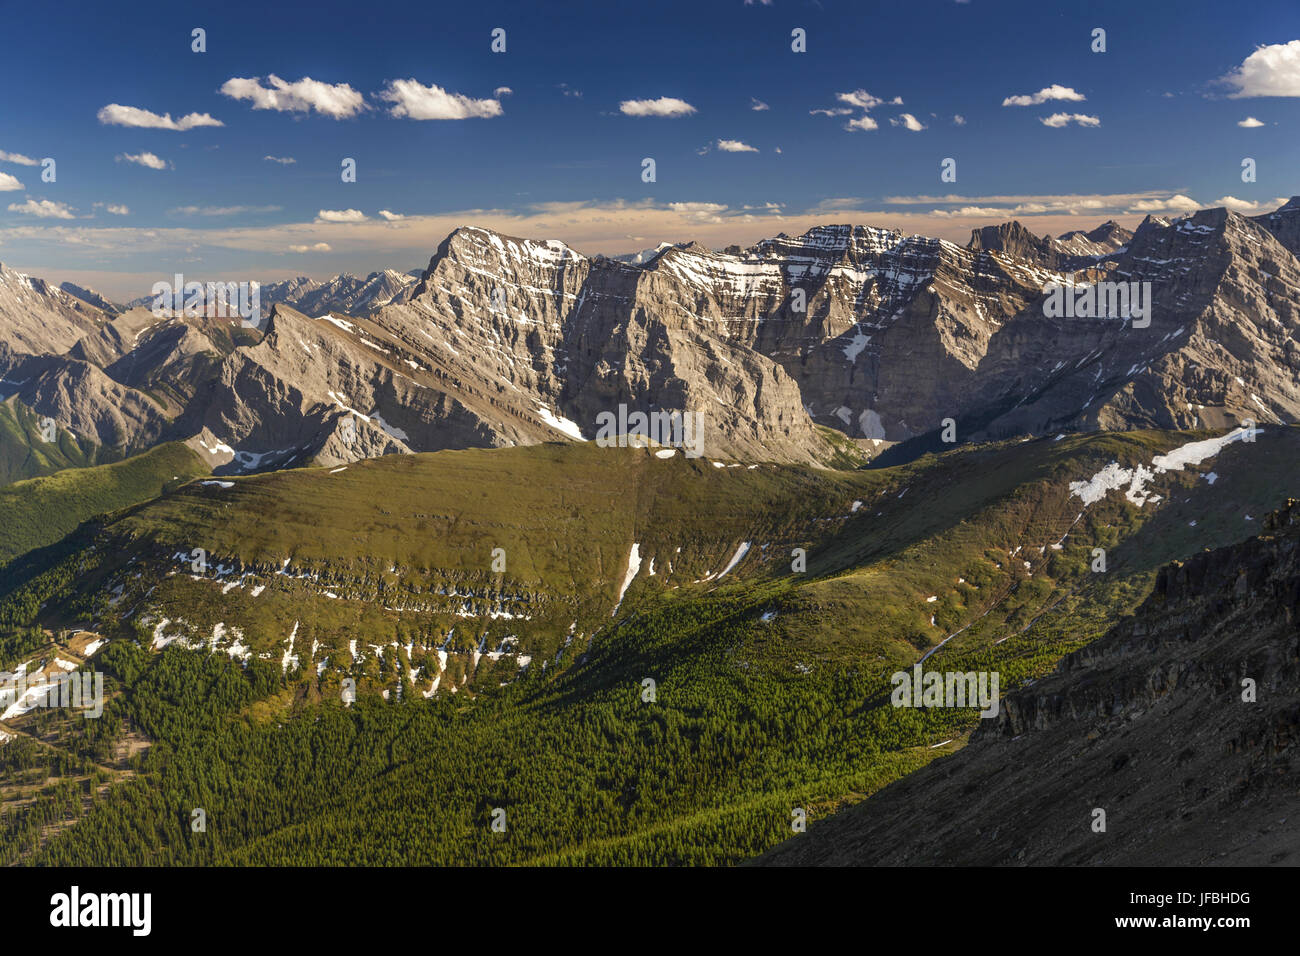 Centennial Ridge Hiking Trail in Kananaskis Country from summit of Mount Collembola in Rocky Mountains Alberta Canada Stock Photo